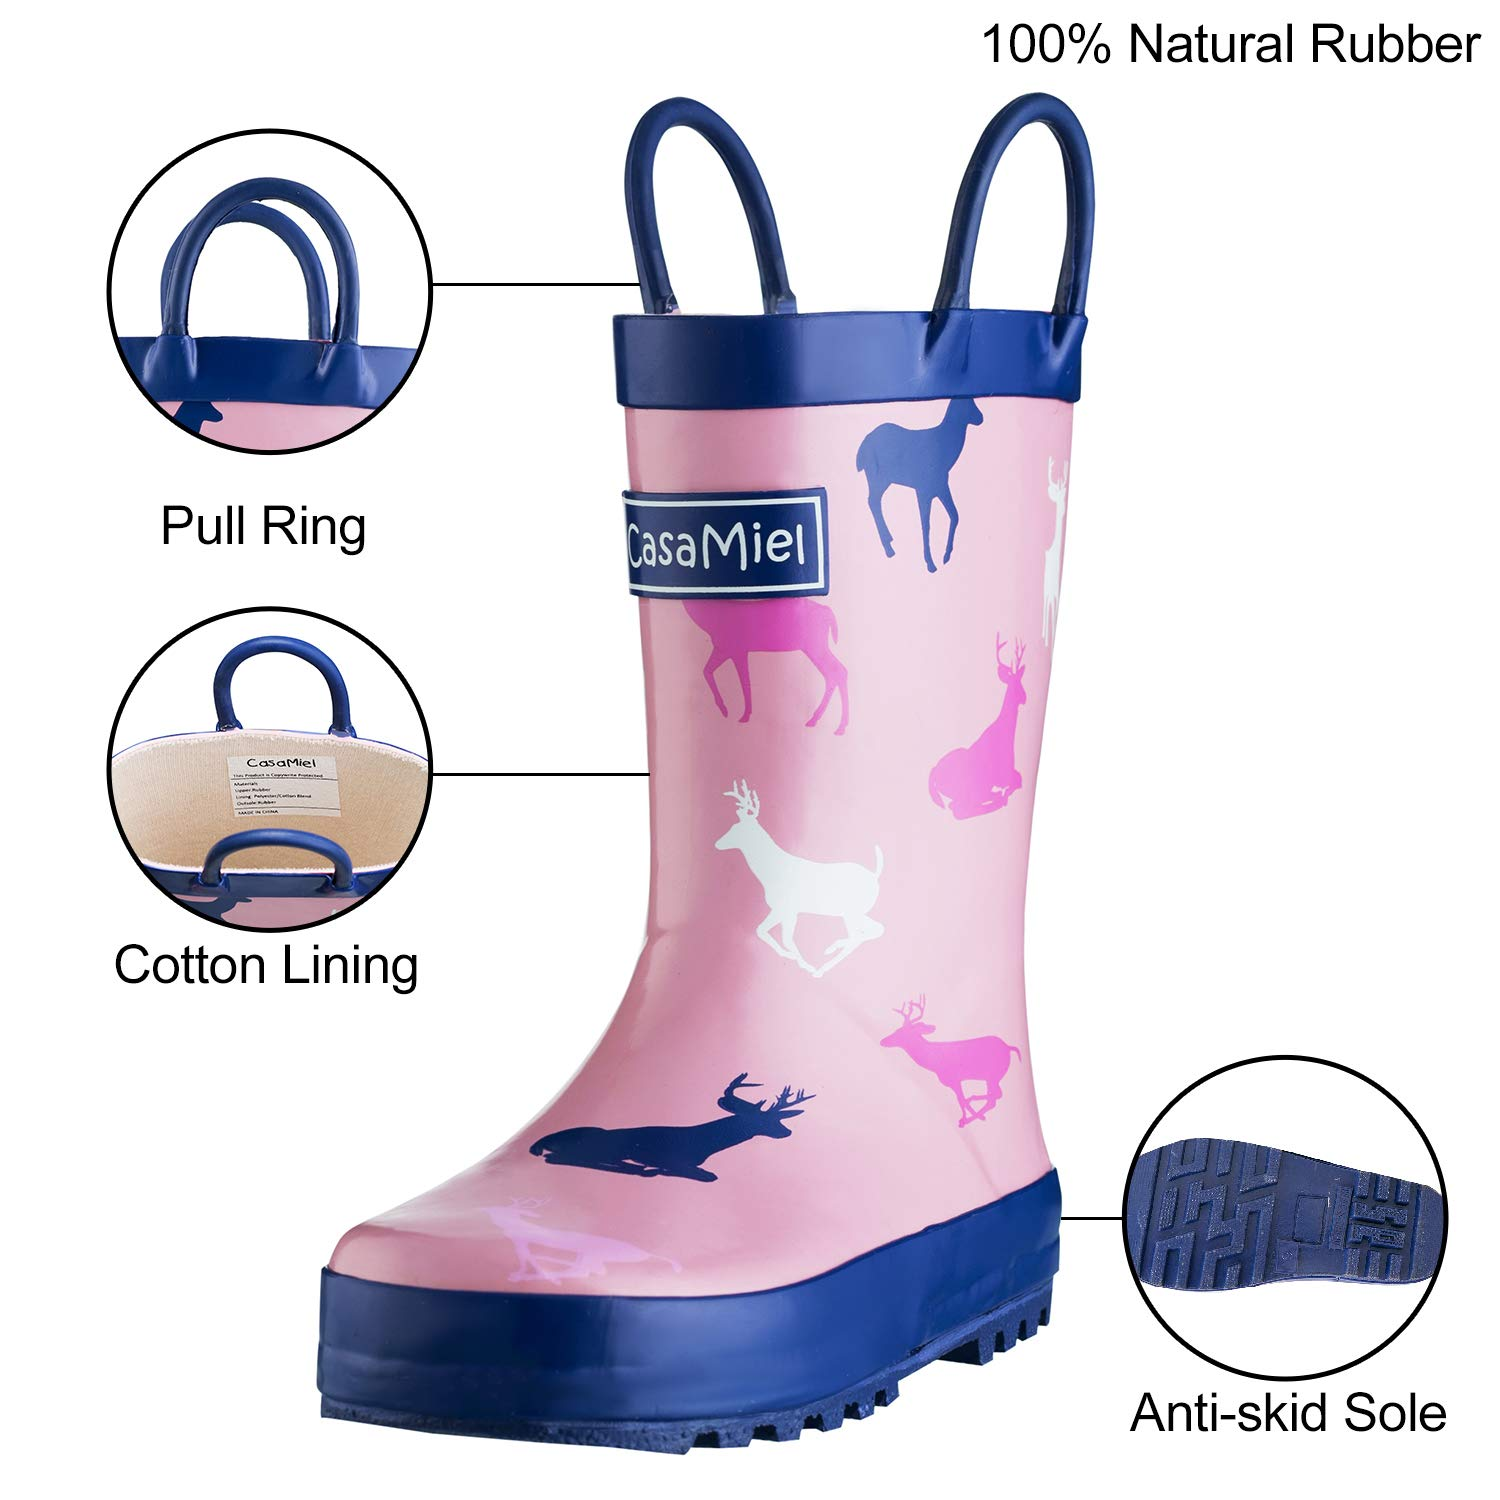 CasaMiel Kid&Toddler Rain Boots for Girls, Children's Handcrafted Rubber Boots, Pink Christmas Deer by CasaMiel (Image #2)